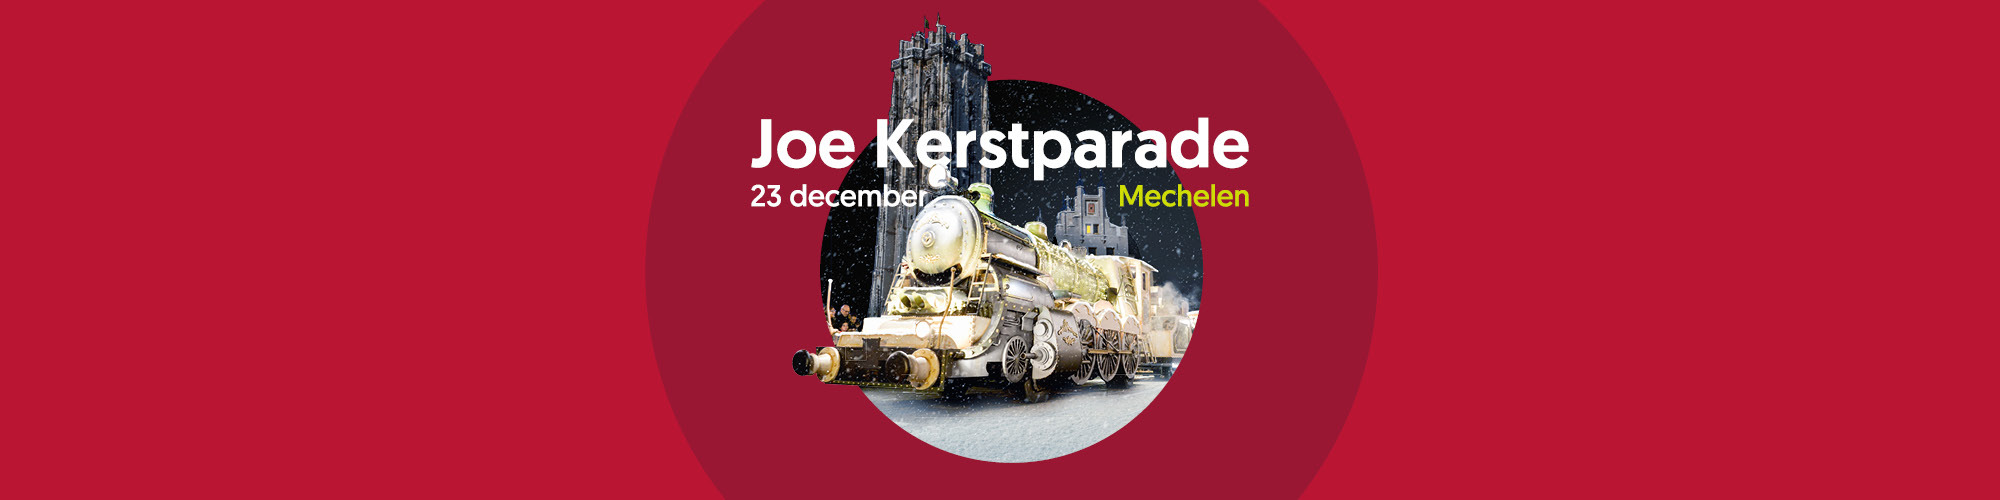 Joe kerstparade header v3